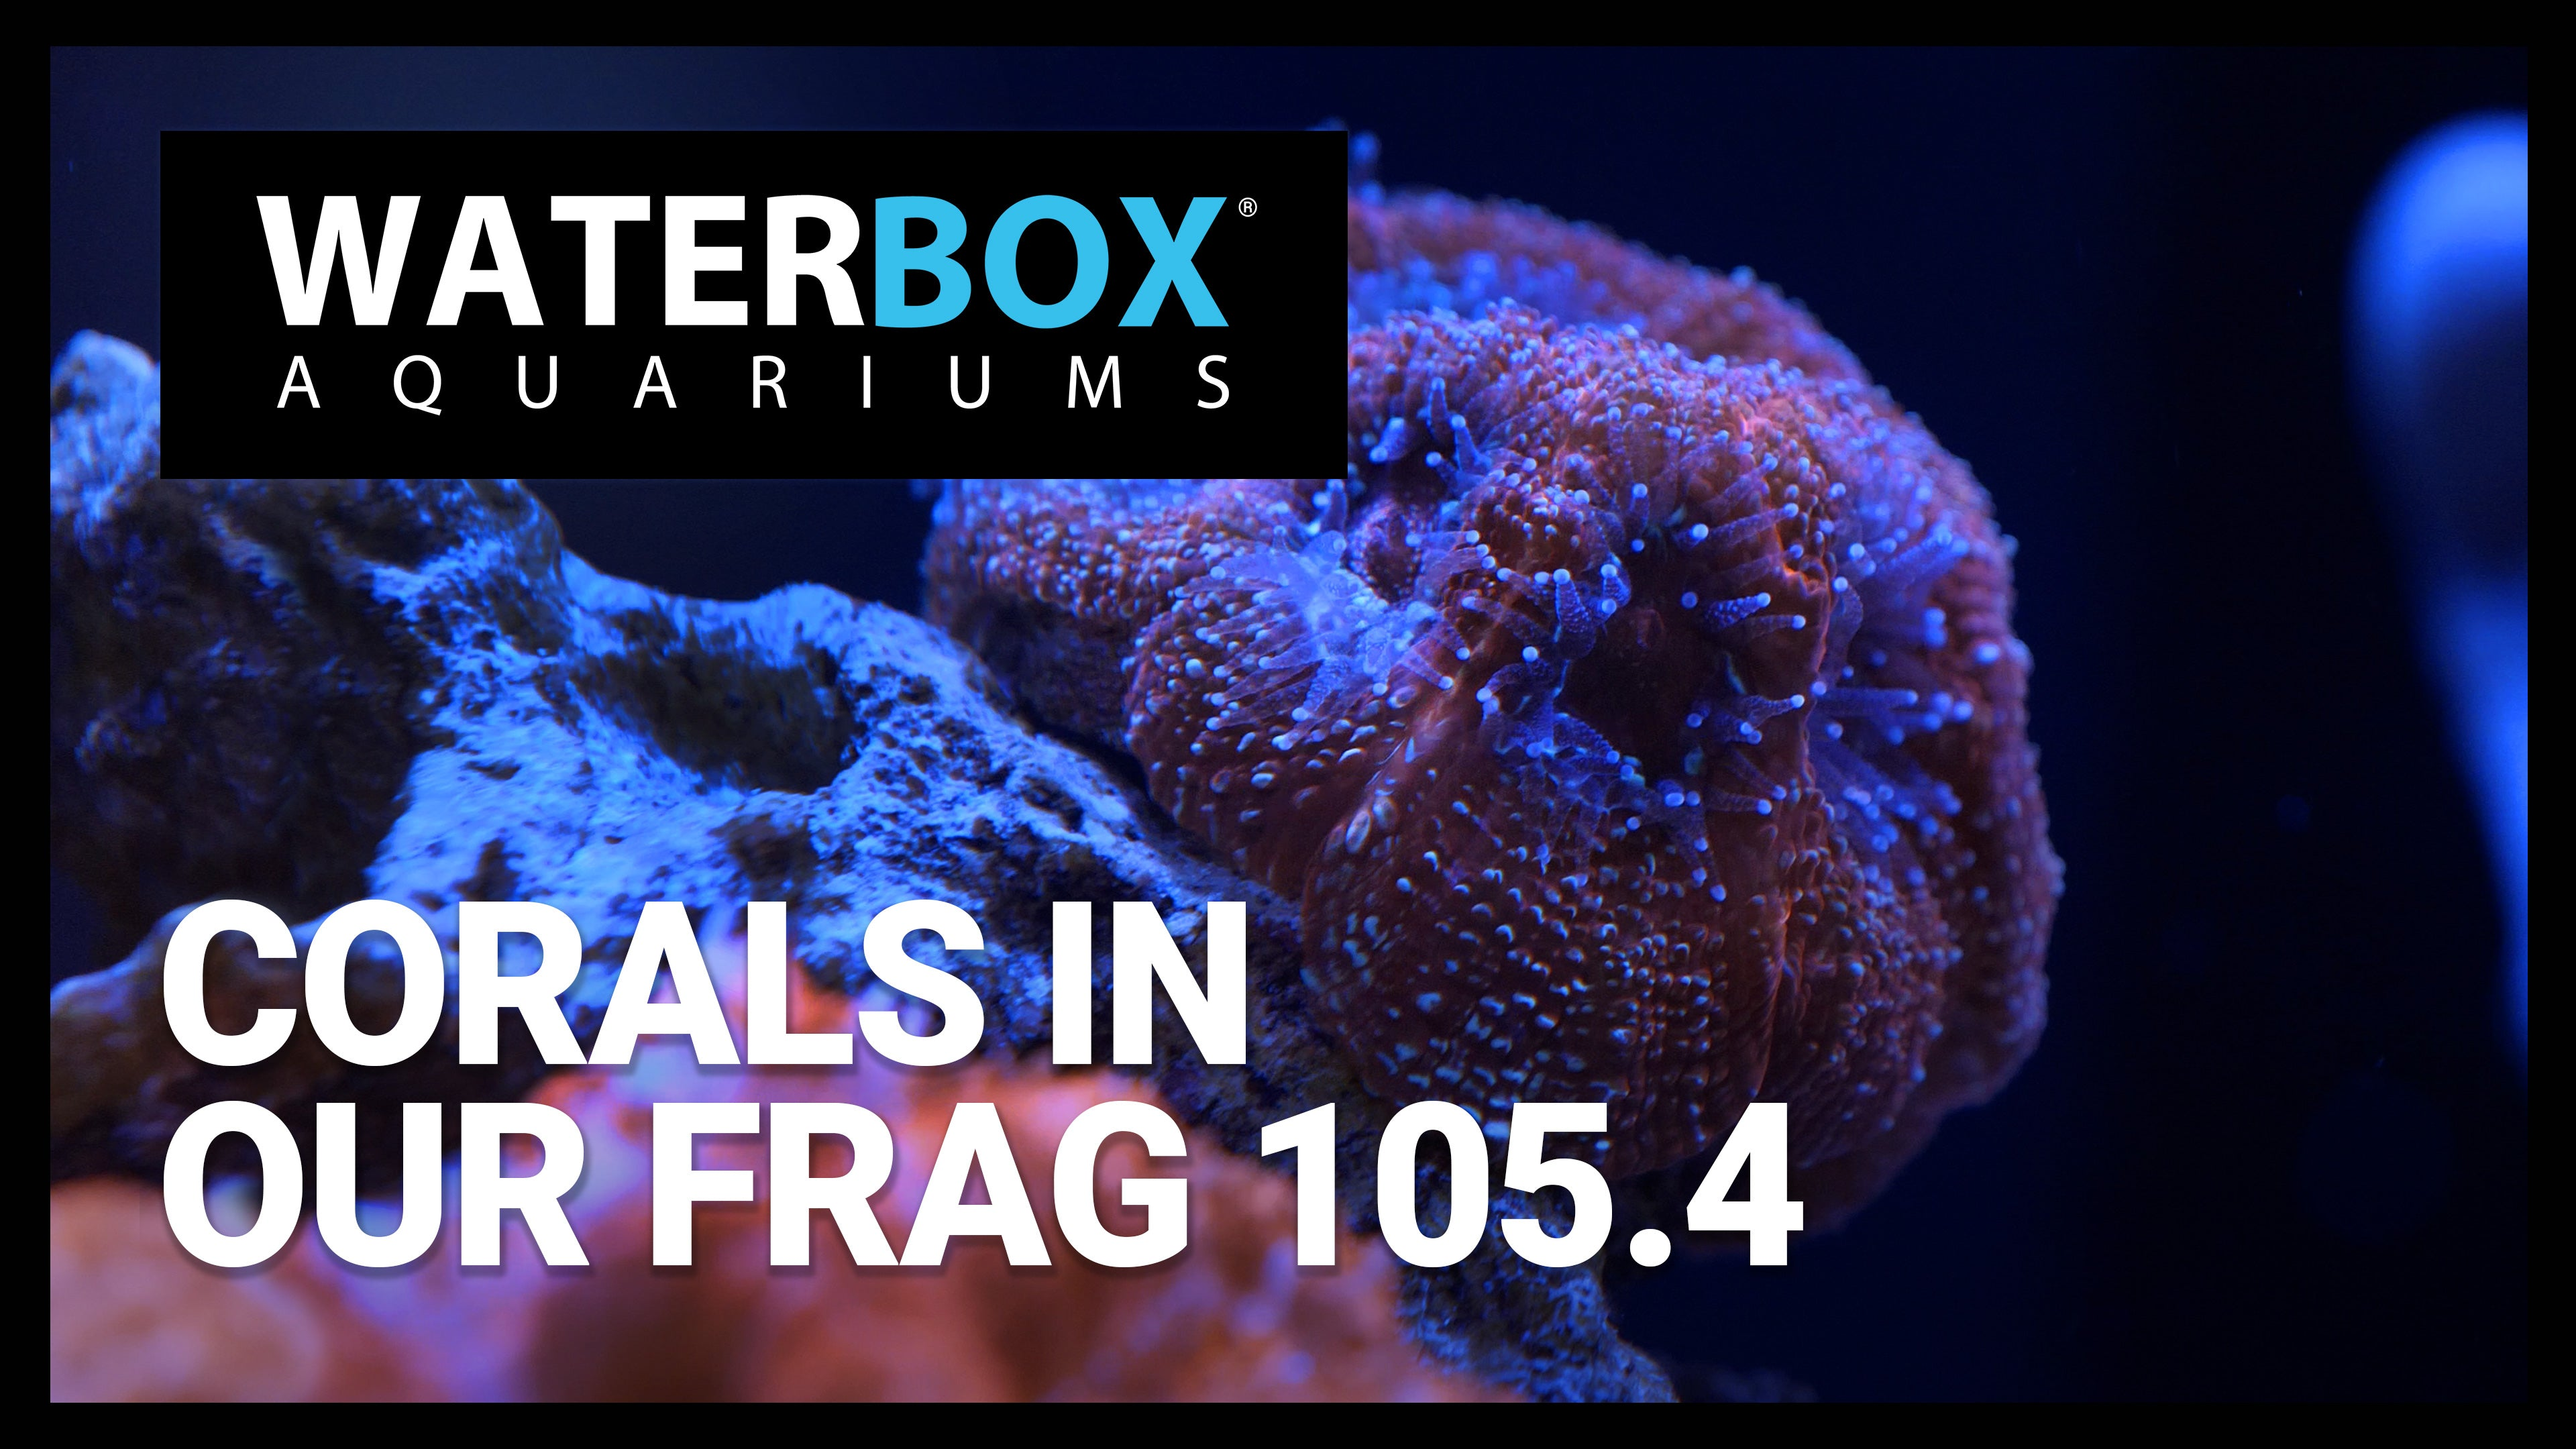 Corals in our FRAG 105.4